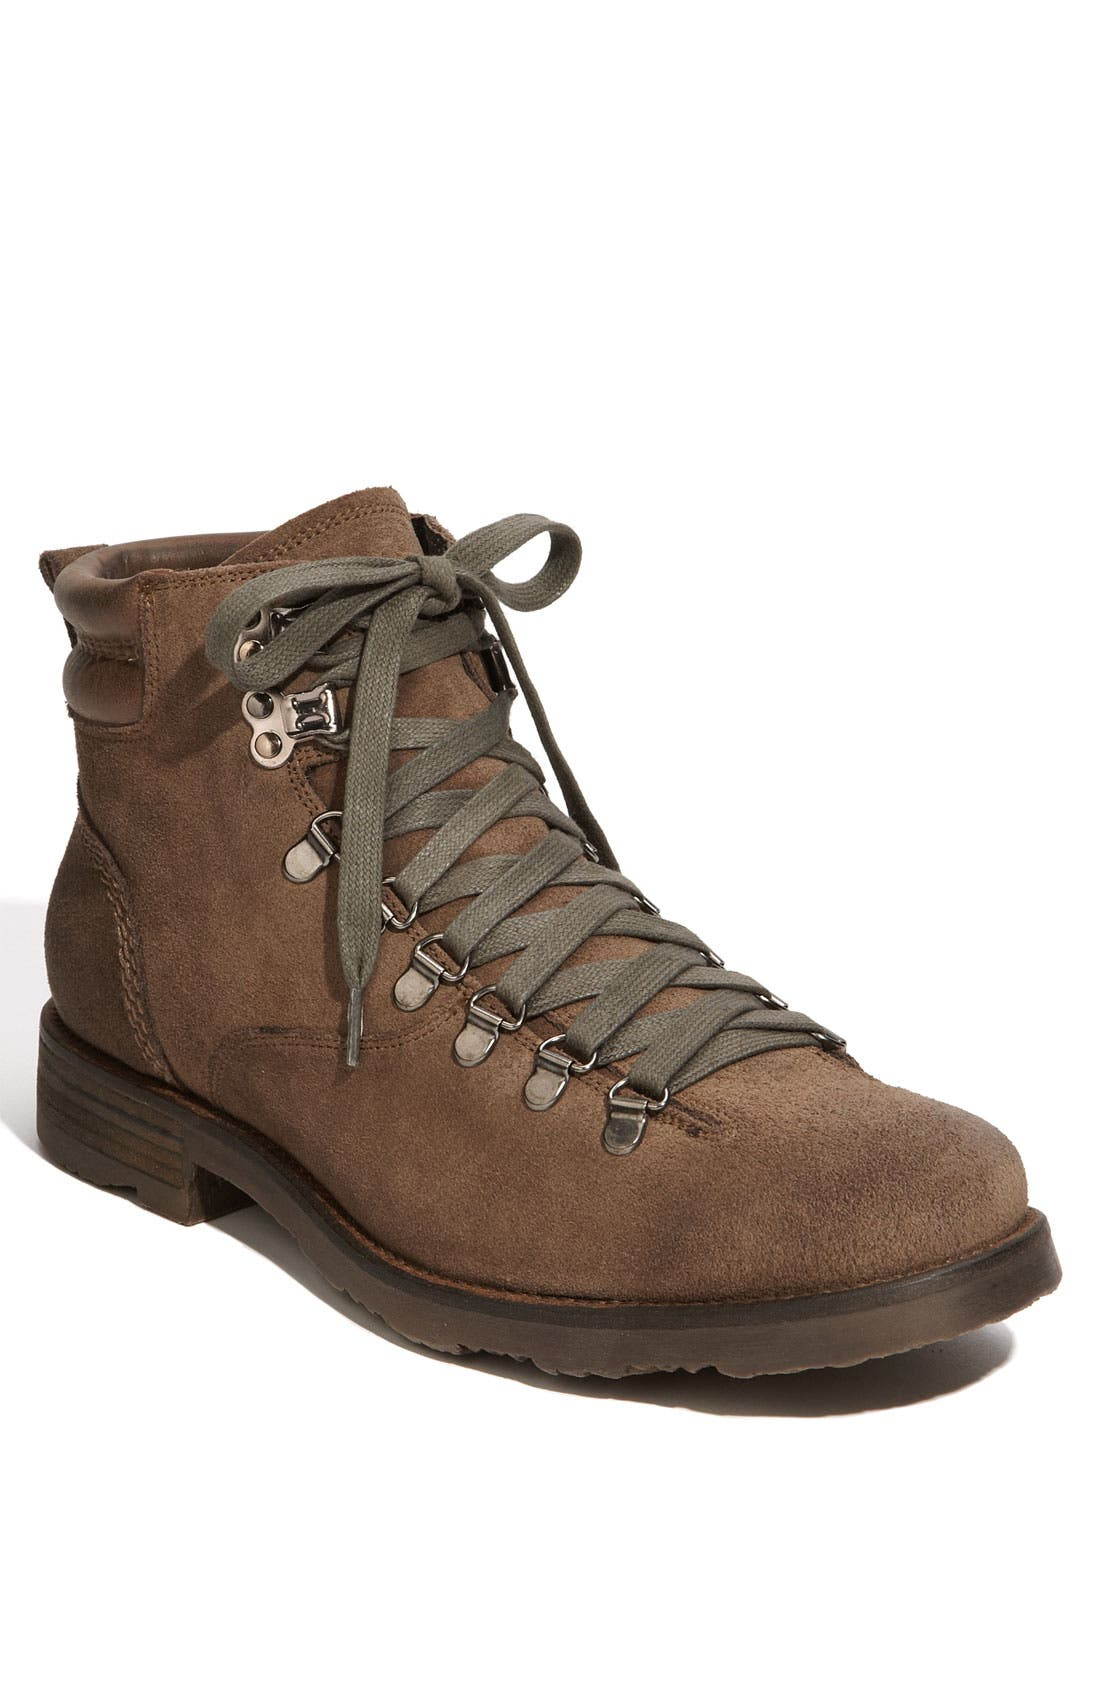 Alternate Image 1 Selected - Wallin & Bros. 'Zurich Euro' Hiking Boot